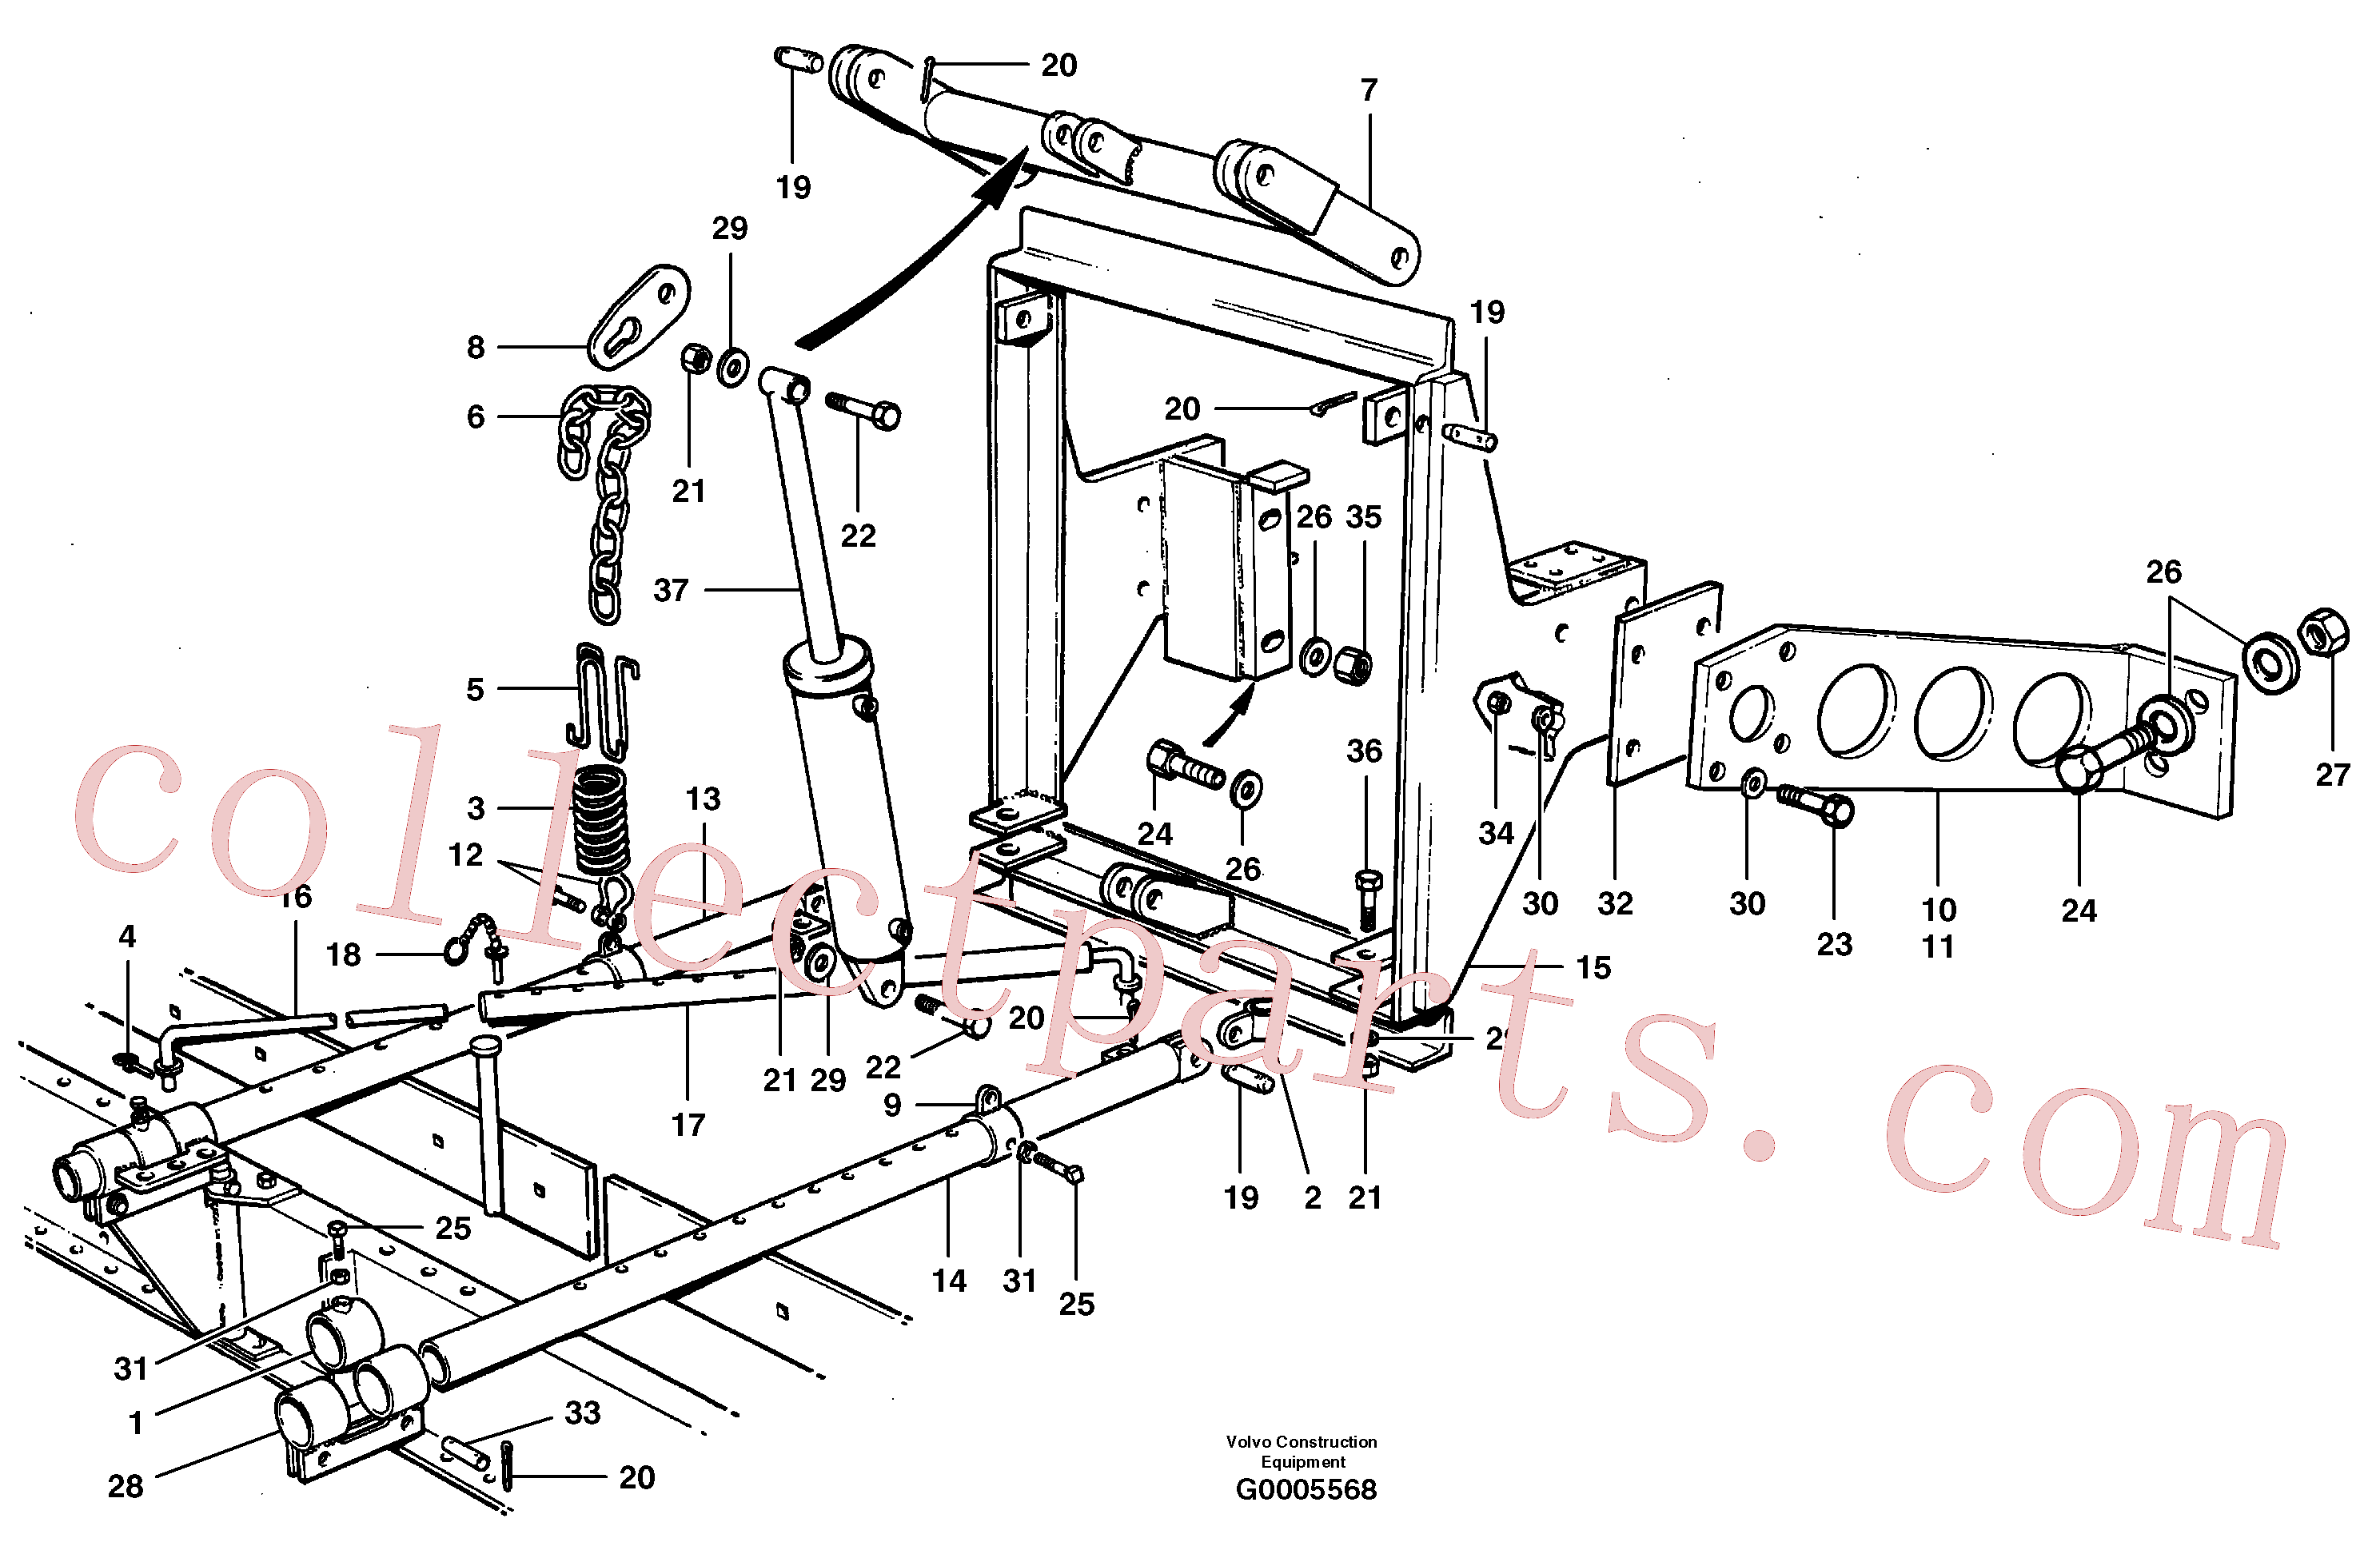 CH22129 for Volvo Windrow eliminator(G0005568 assembly)